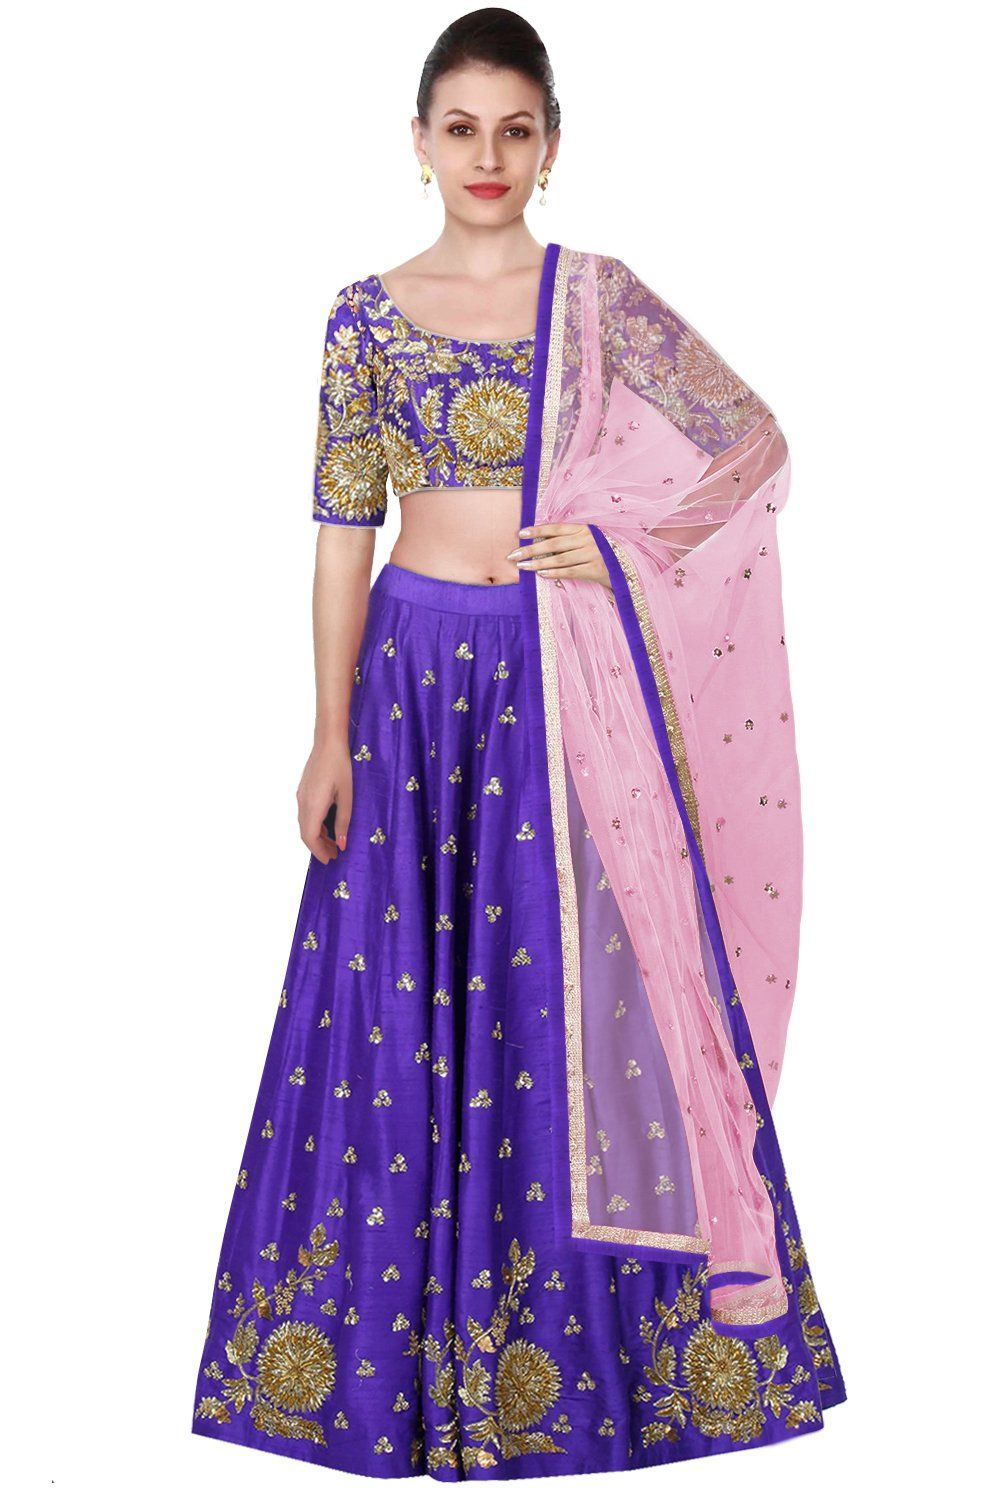 efdb05fb2d Purple Color Lehenga Choli with Pink Dupatta in 2019 | Indian ...